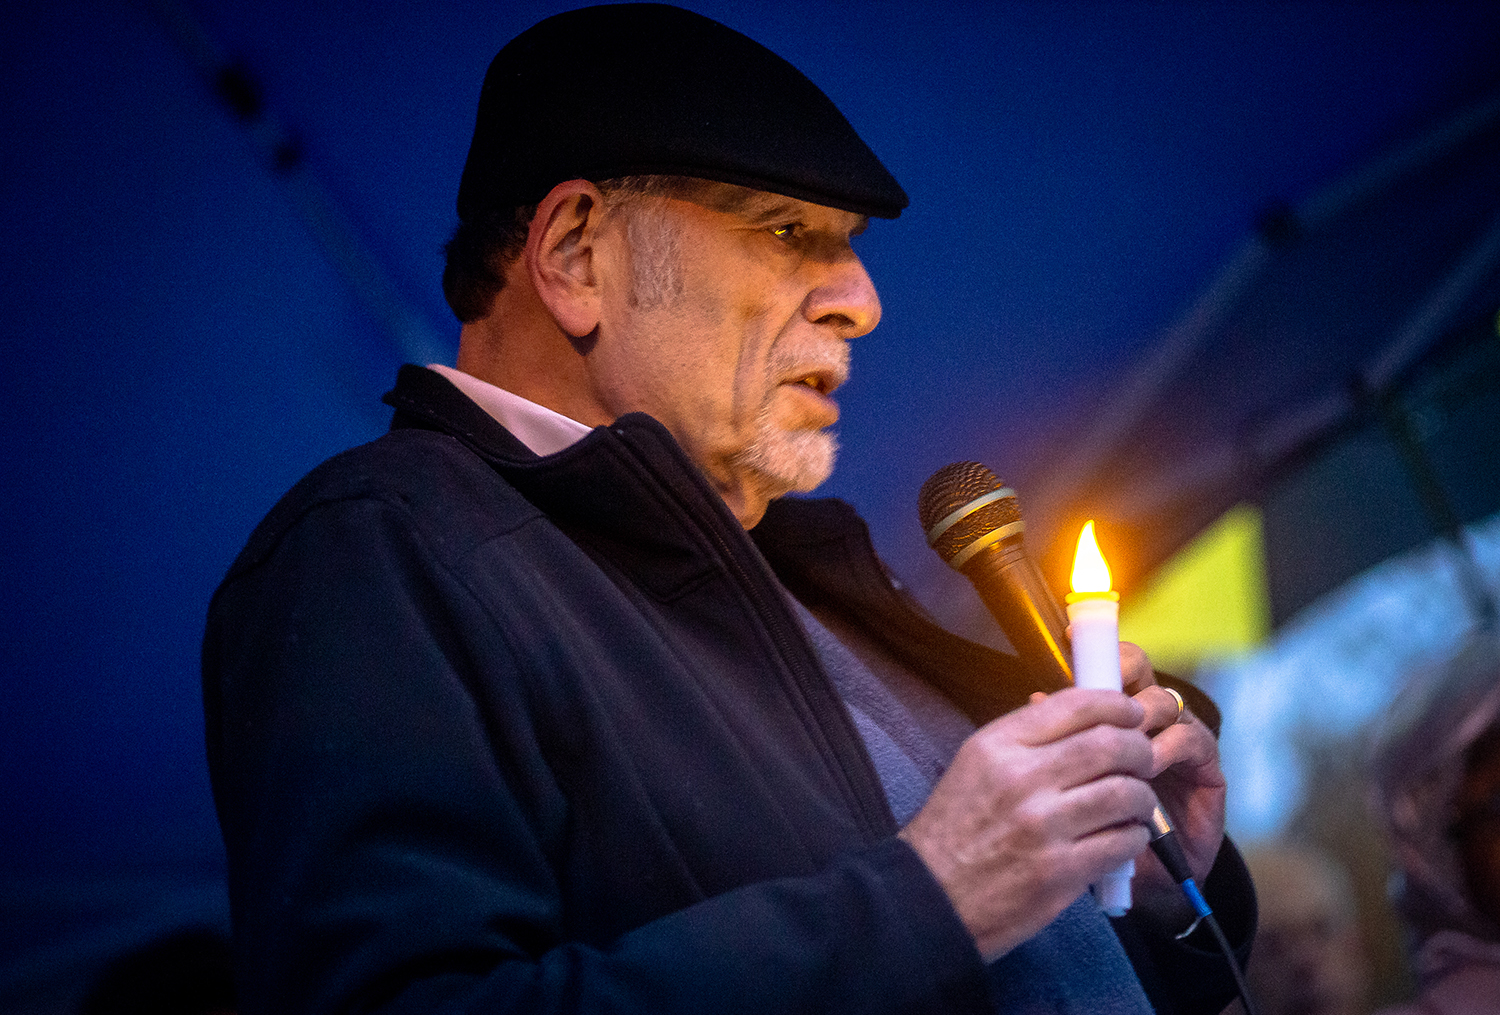 Rabbi Barry Marks delivers his message to a crowd of around 150 as leaders from various faiths across Springfield gather to mourn the loss of life at the Tree of Life Synagogue in Pittsburgh, Pa., during a vigil organized by the Jewish Federation of Springfield and the Jewish Community Relations Council on the steps of the Illinois State Capitol, Thursday, Nov. 1, 2018, in Springfield, Ill. [Justin L. Fowler/The State Journal-Register]